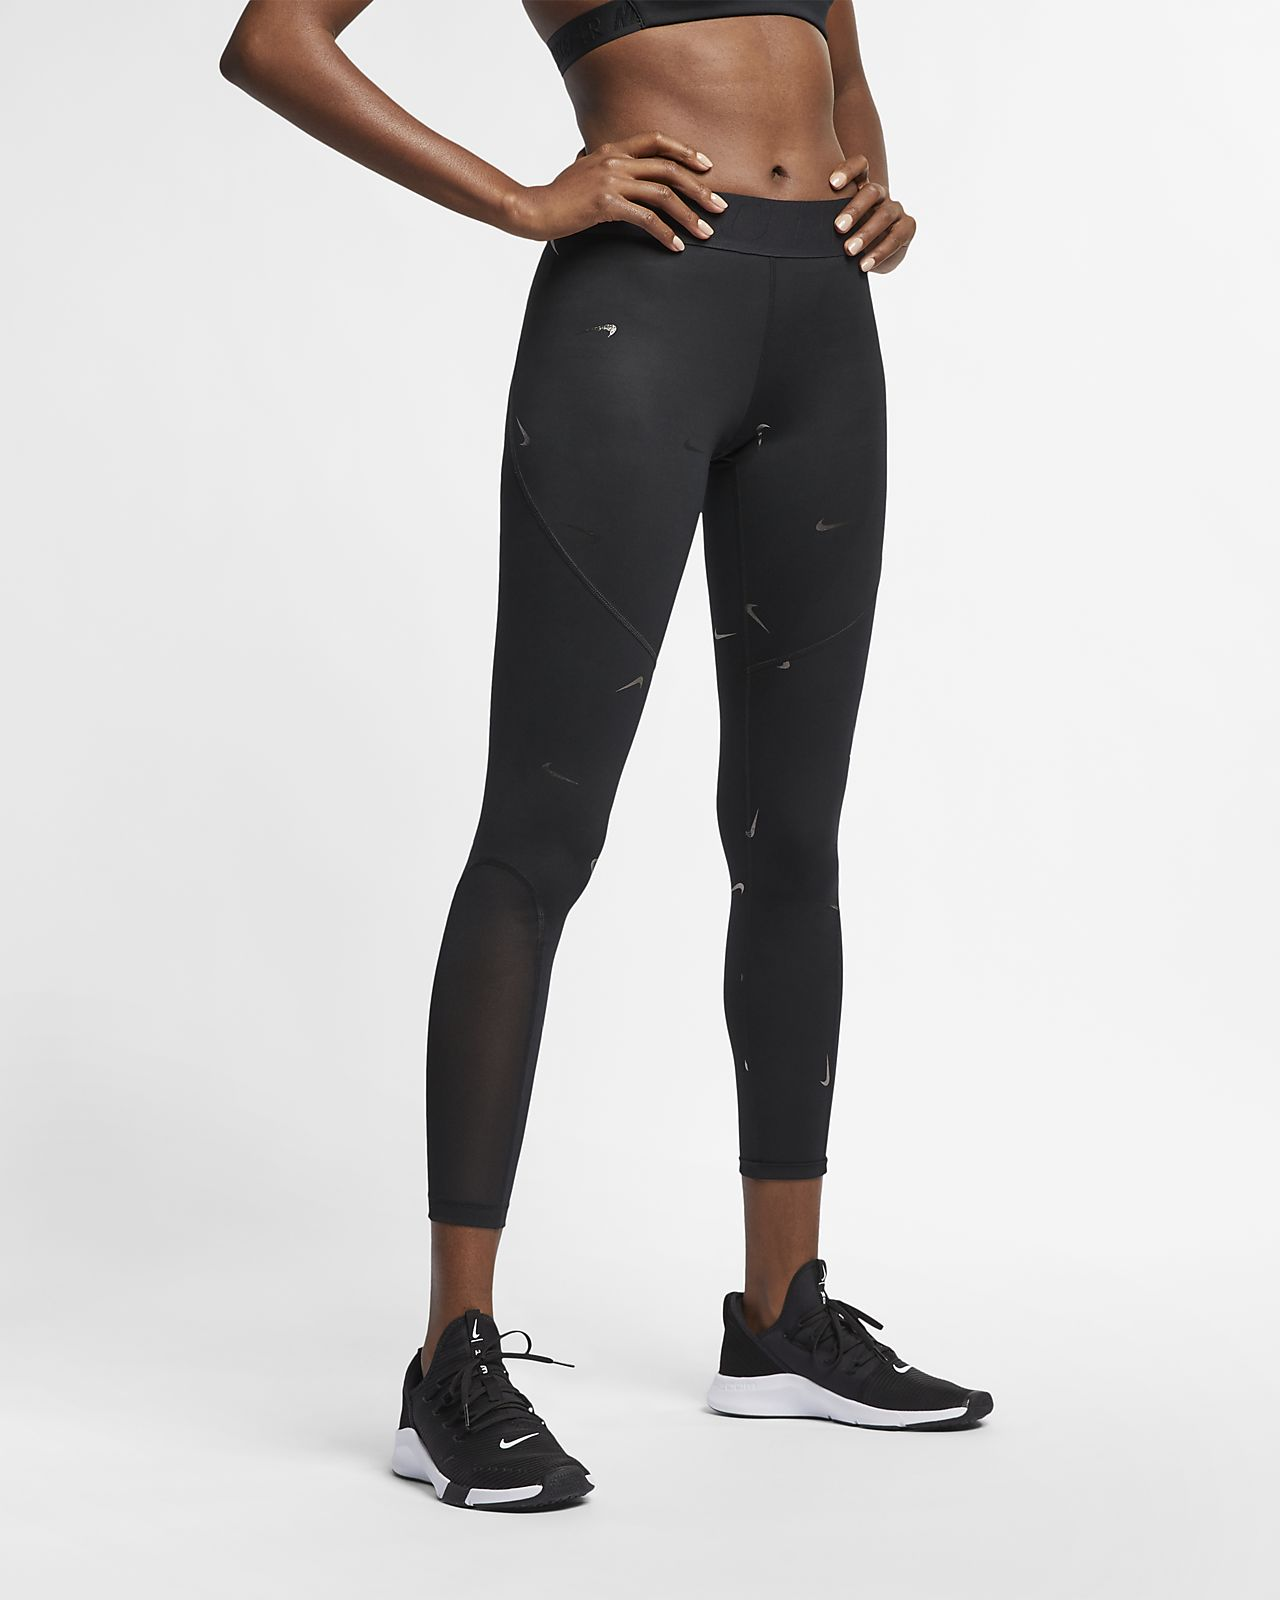 241d17585156e Nike Pro Women's Metallic Printed Tights. Nike.com ZA